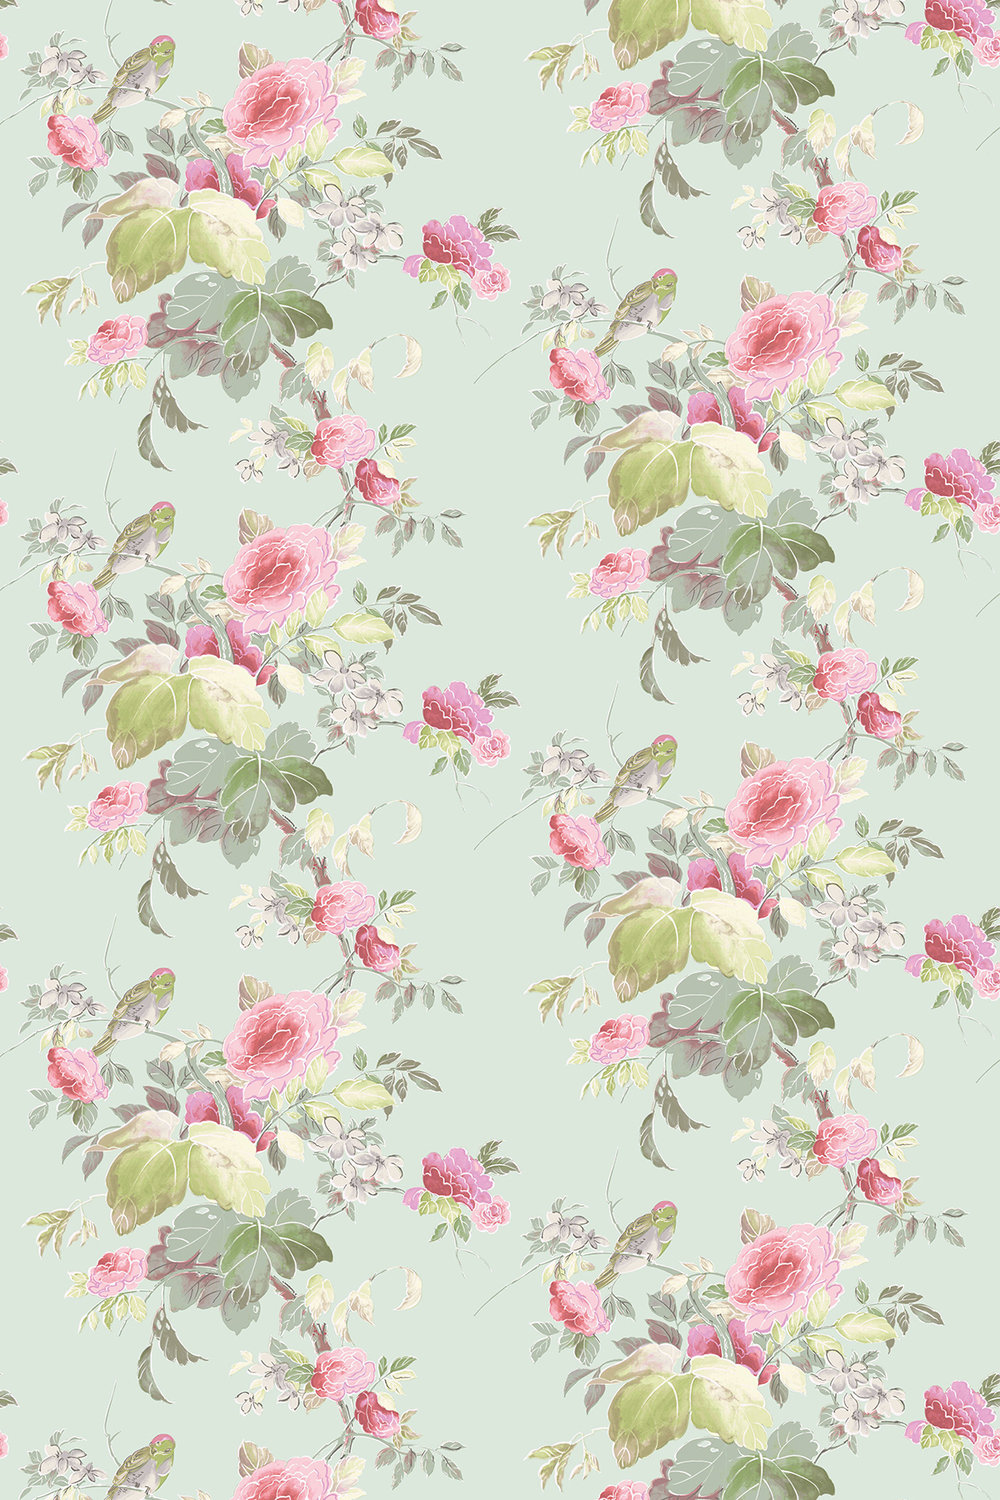 Blendworth Silk Rose Pink/ Duck Egg Fabric - Product code: SILK ROSE 103